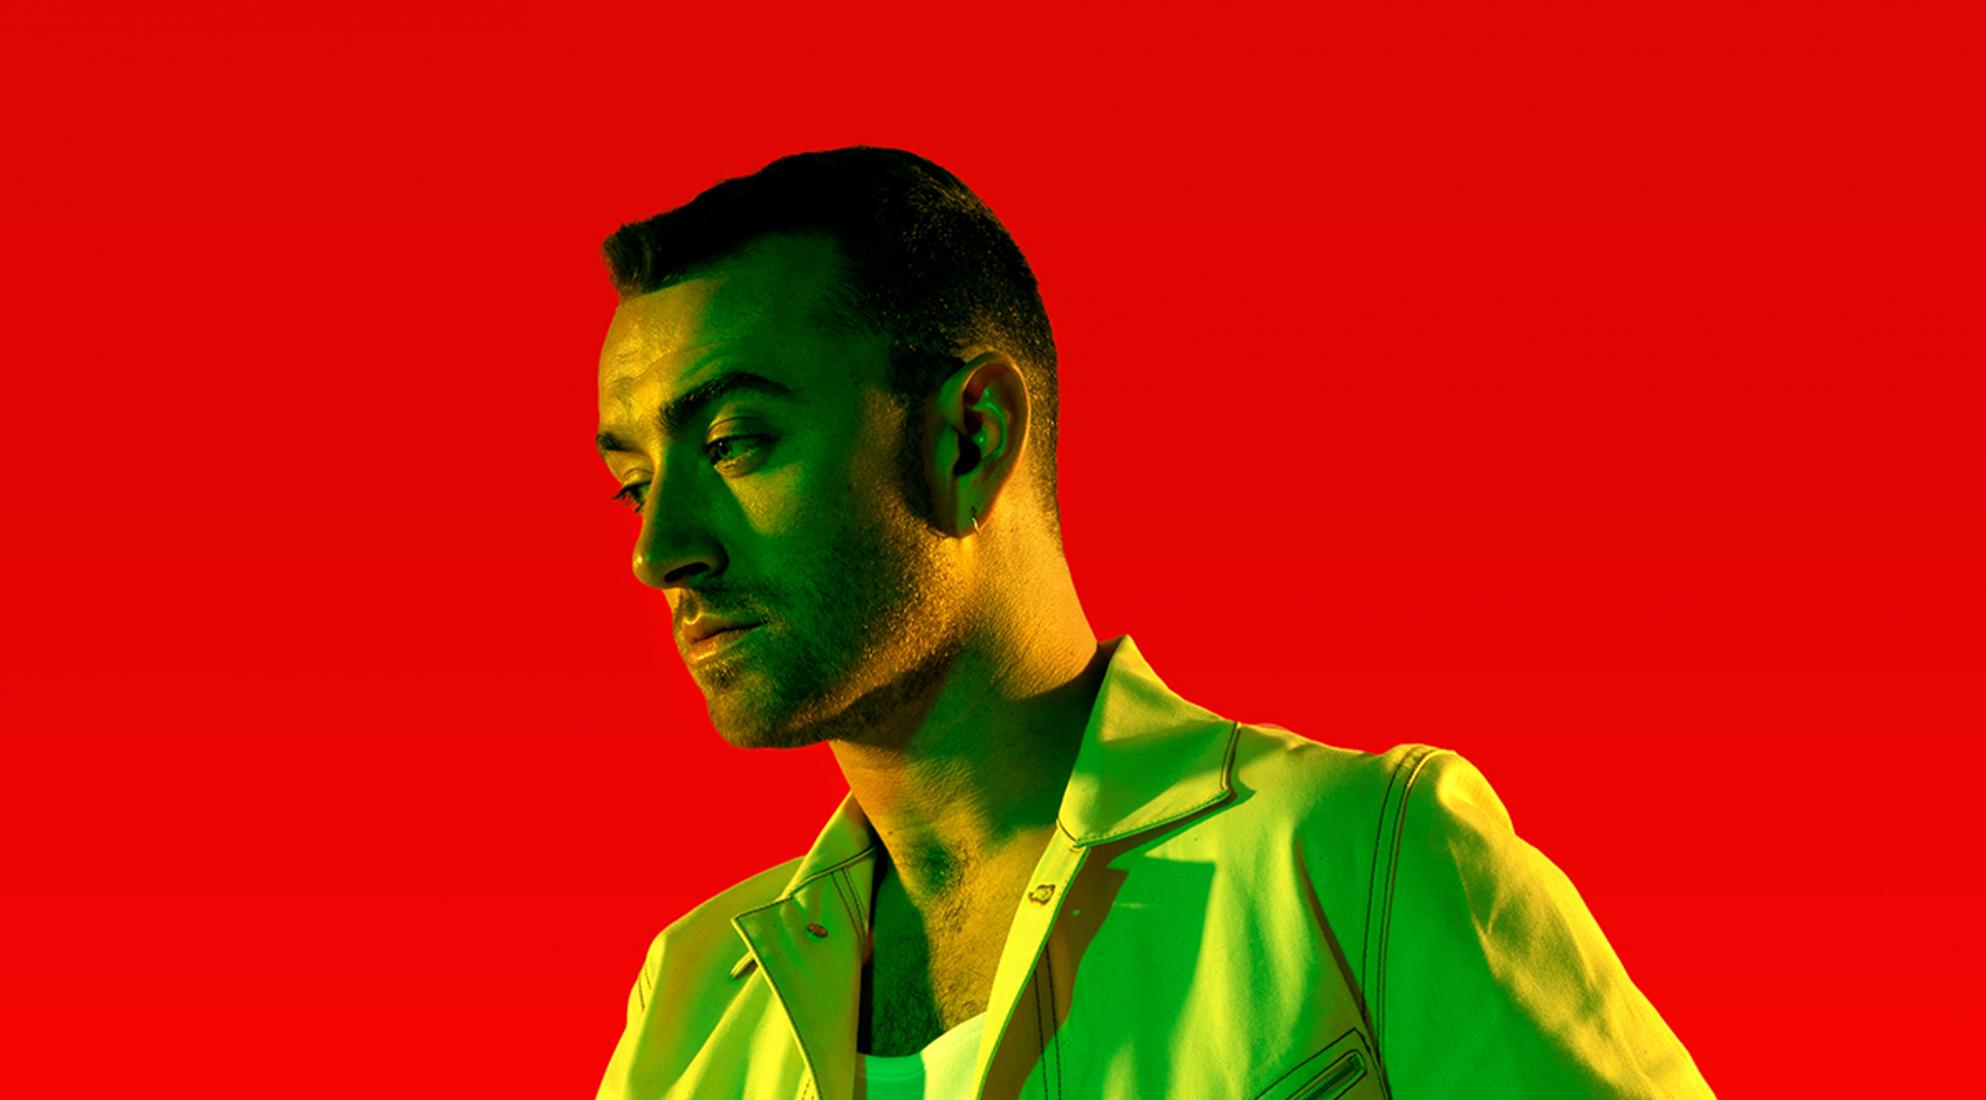 Admit Nothing with Sam Smith